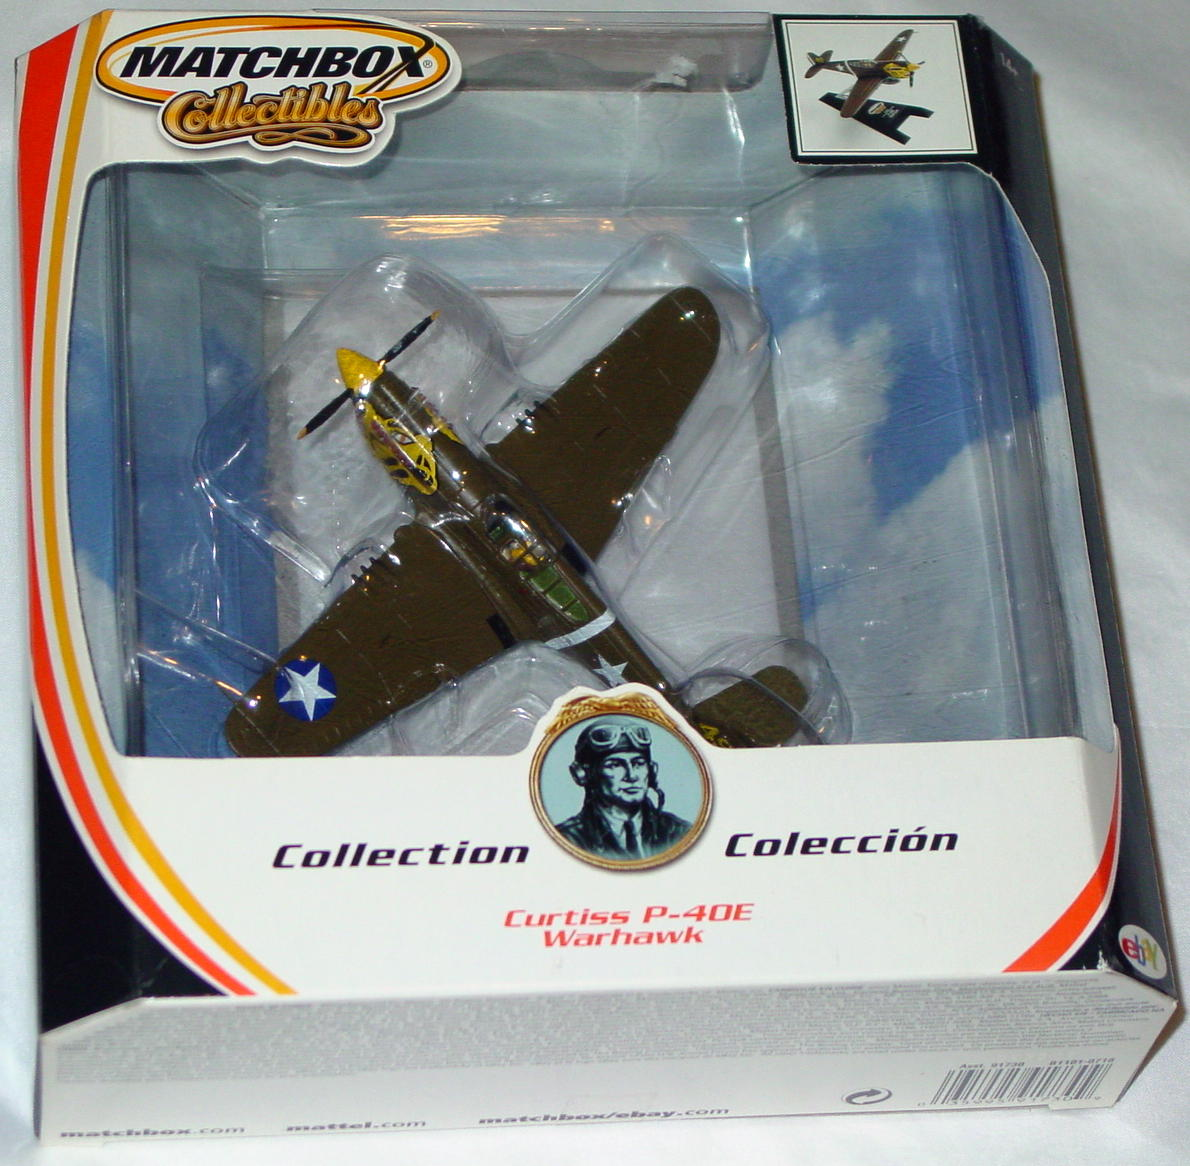 Collectibles - B1101 Olive Curtiss P-40E Warhawk